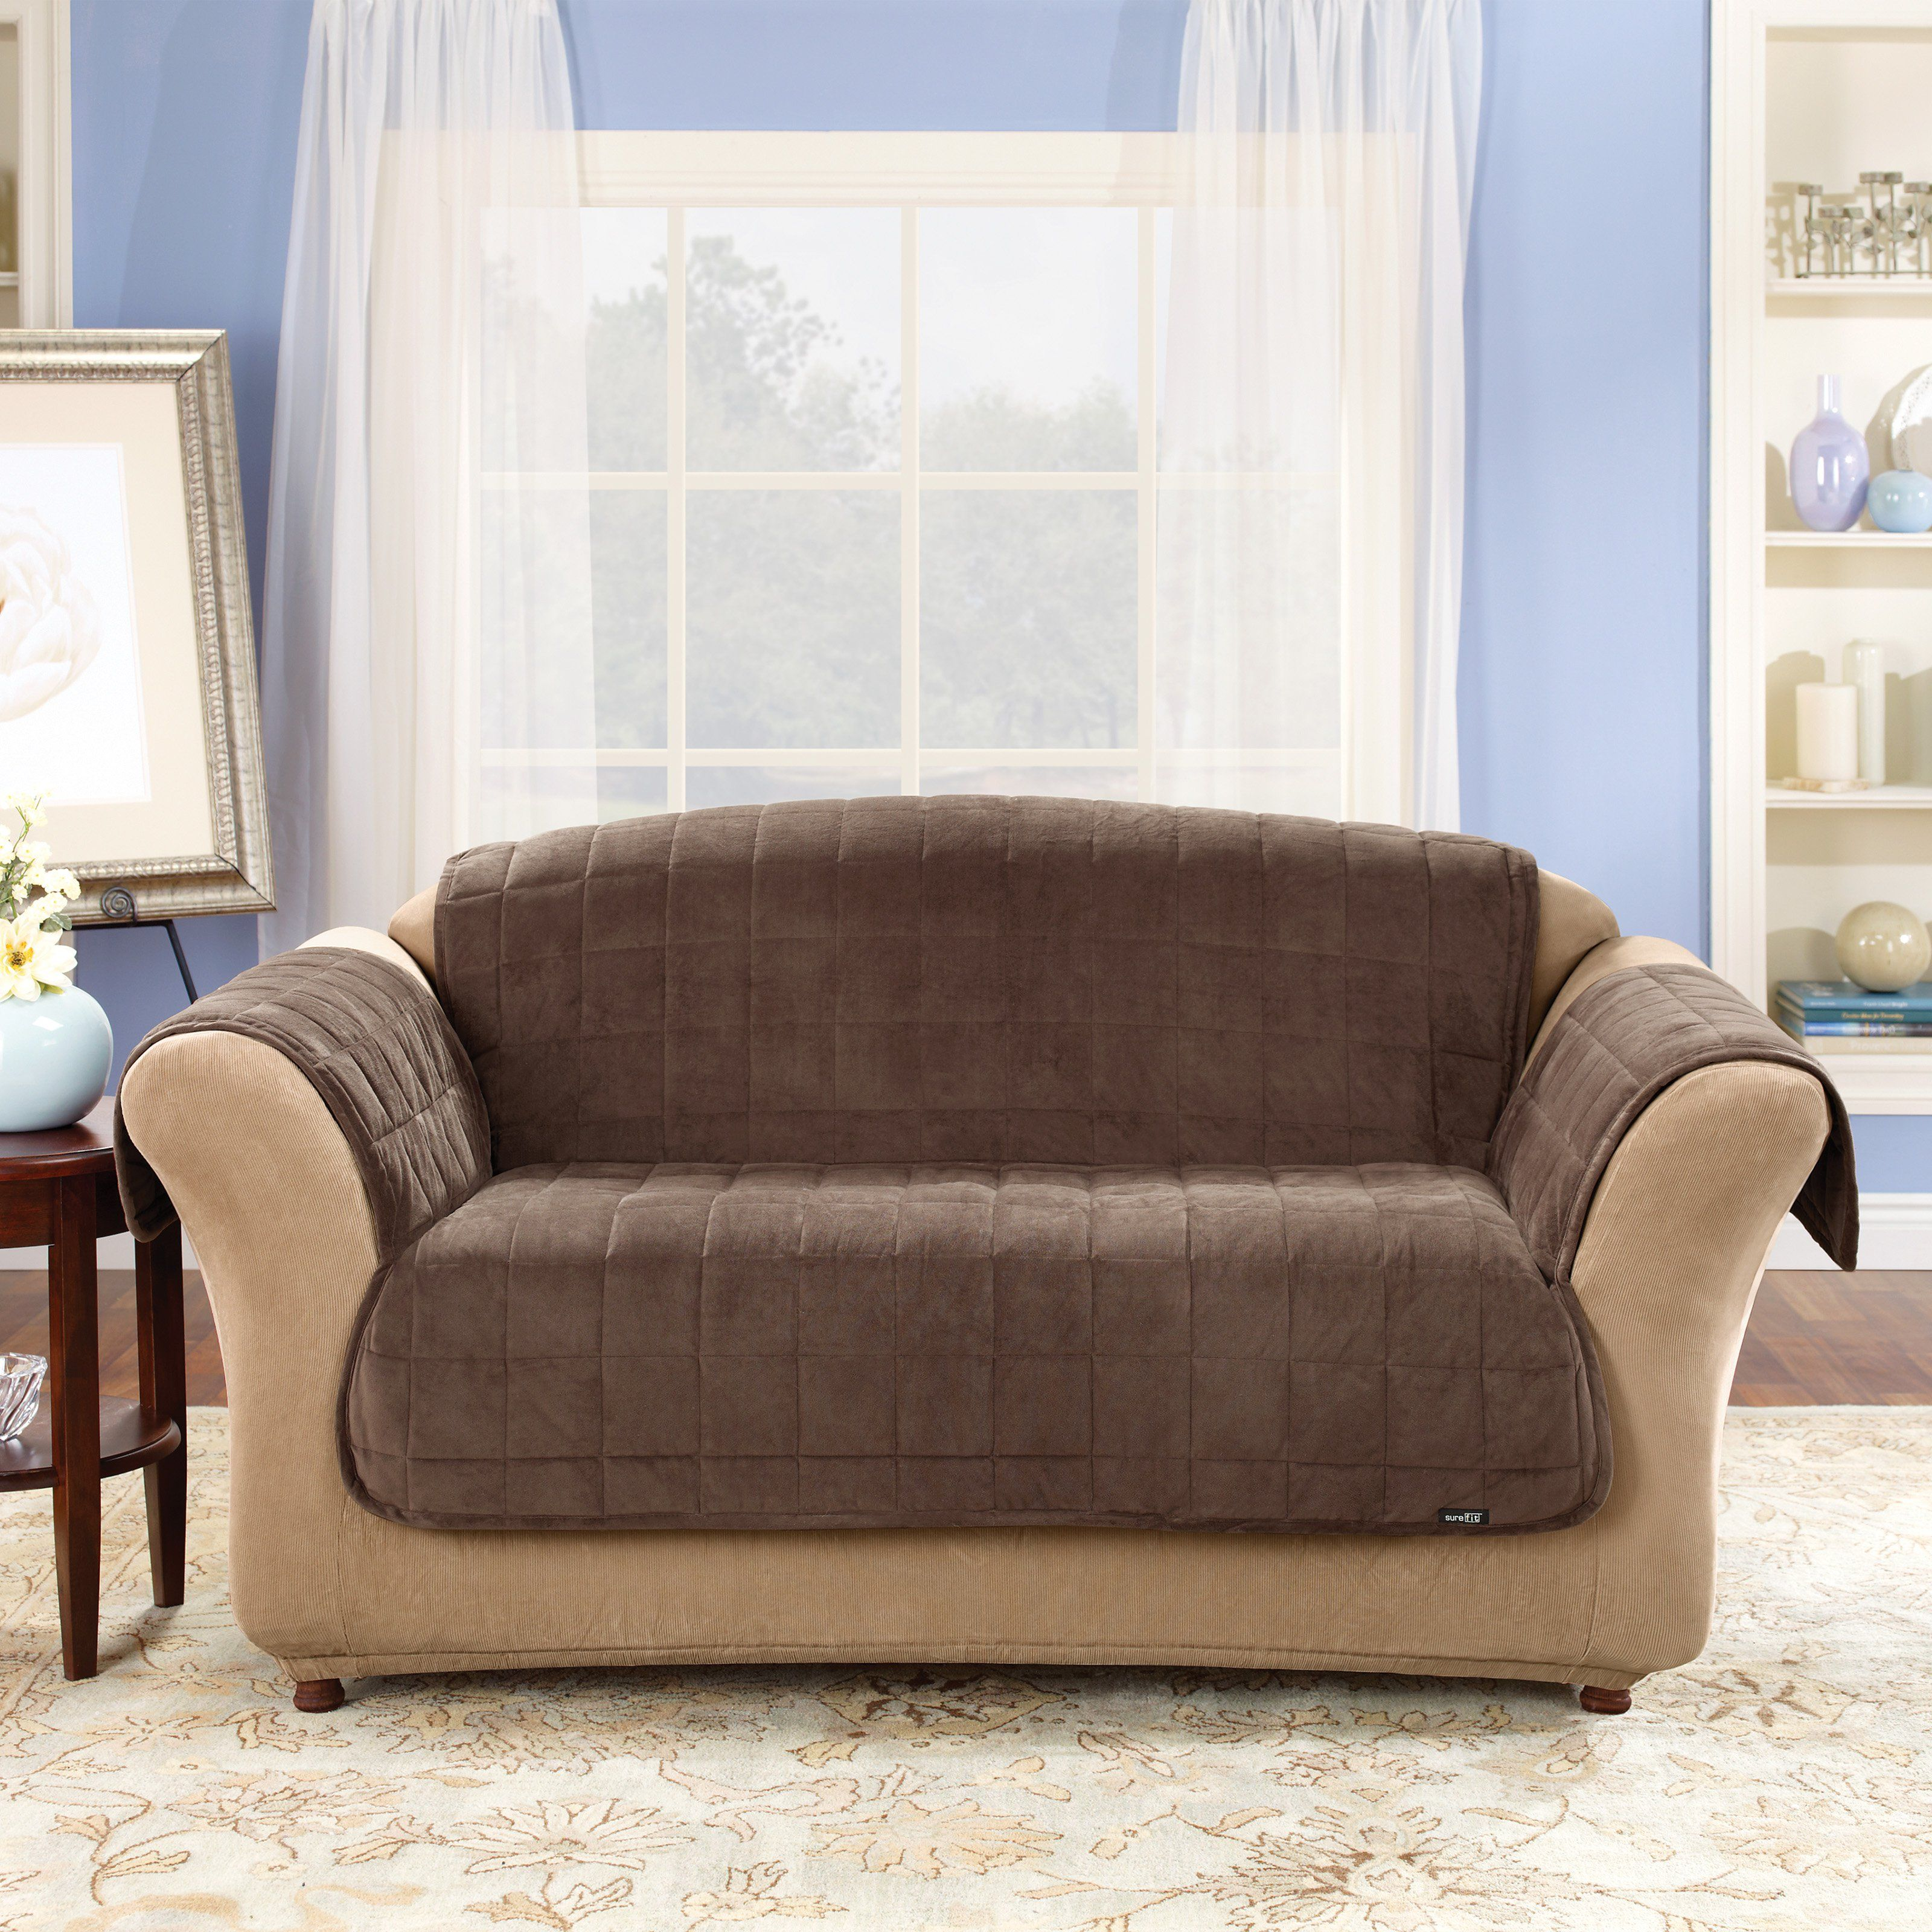 Sure Fit Deluxe Loveseat Pet Cover 39226 Products Pinterest